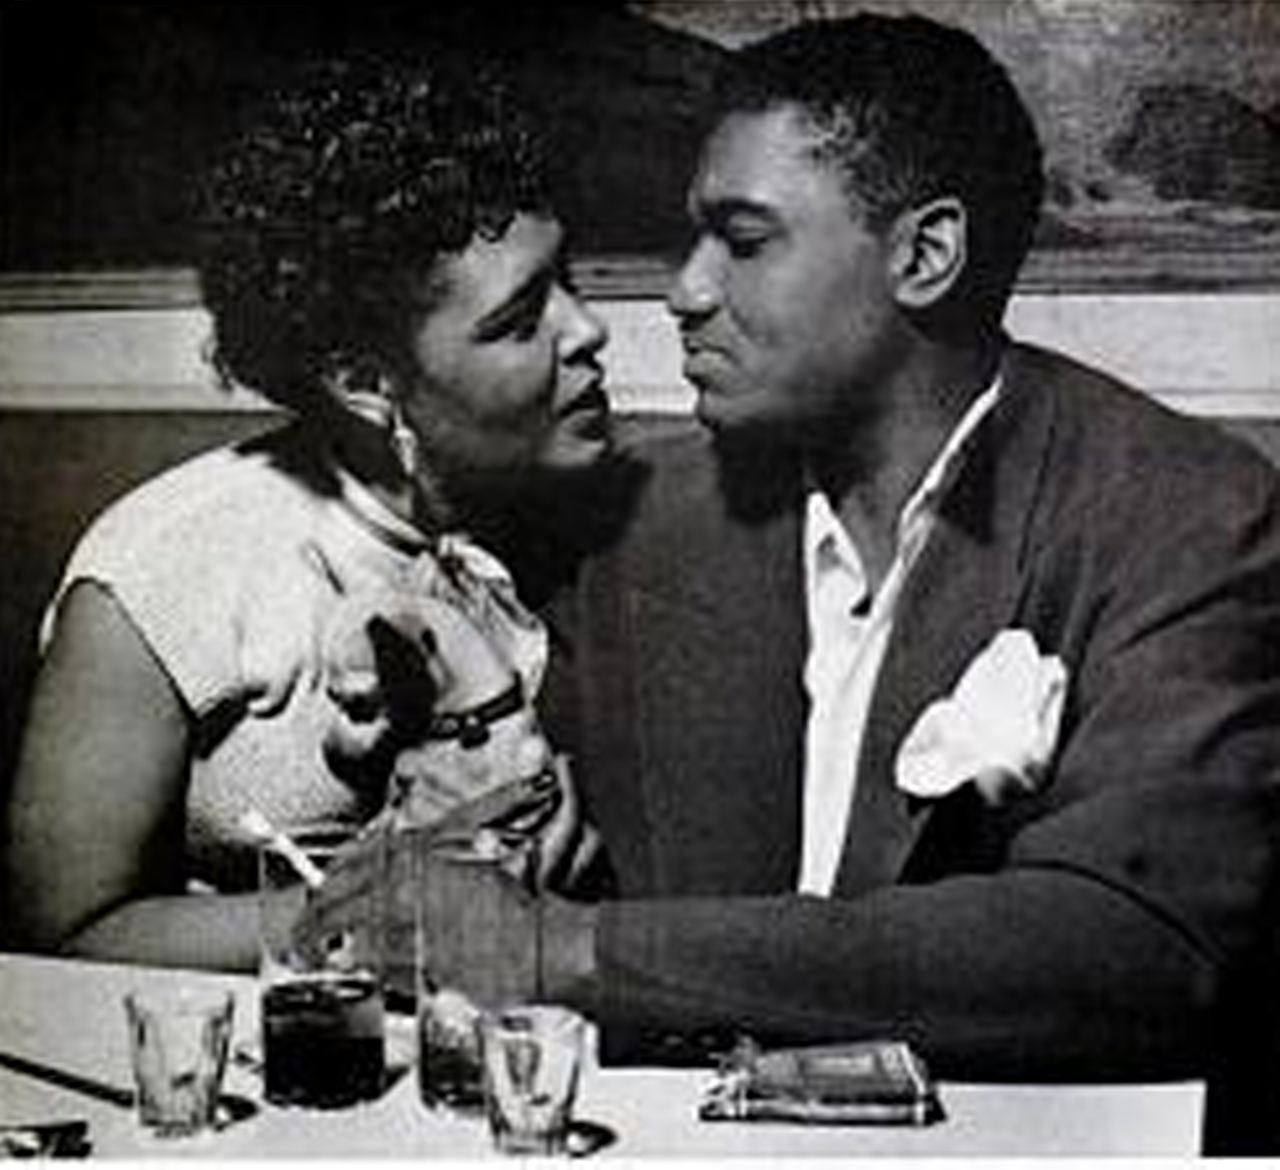 billie holiday and louis mckay relationship